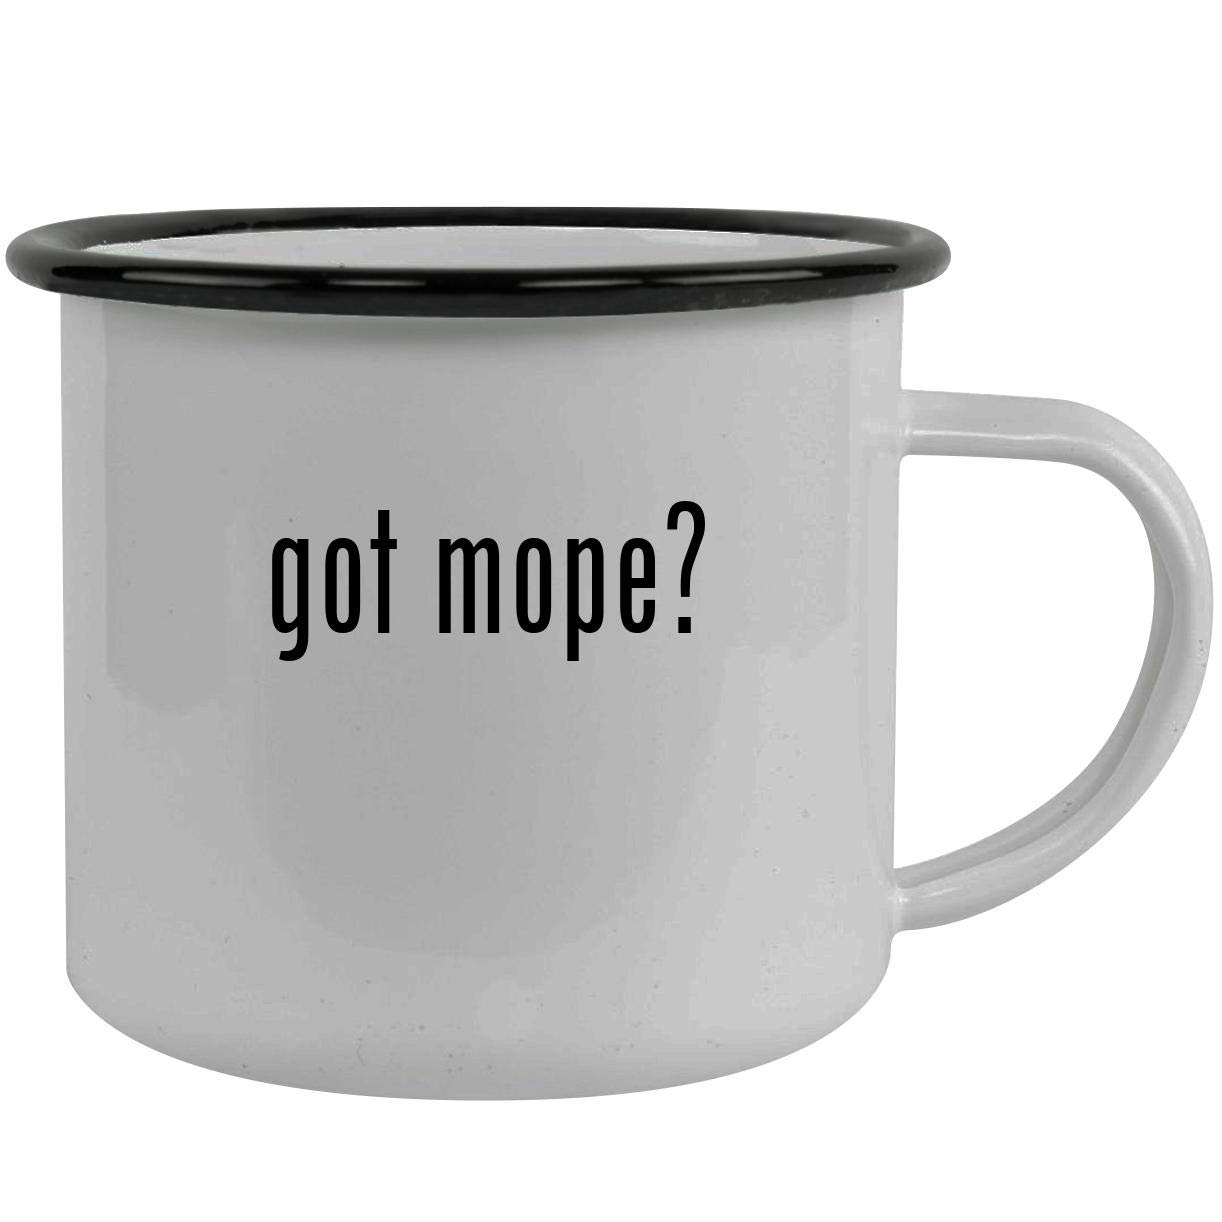 got mope? - Stainless Steel 12oz Camping Mug, Black by Molandra Products